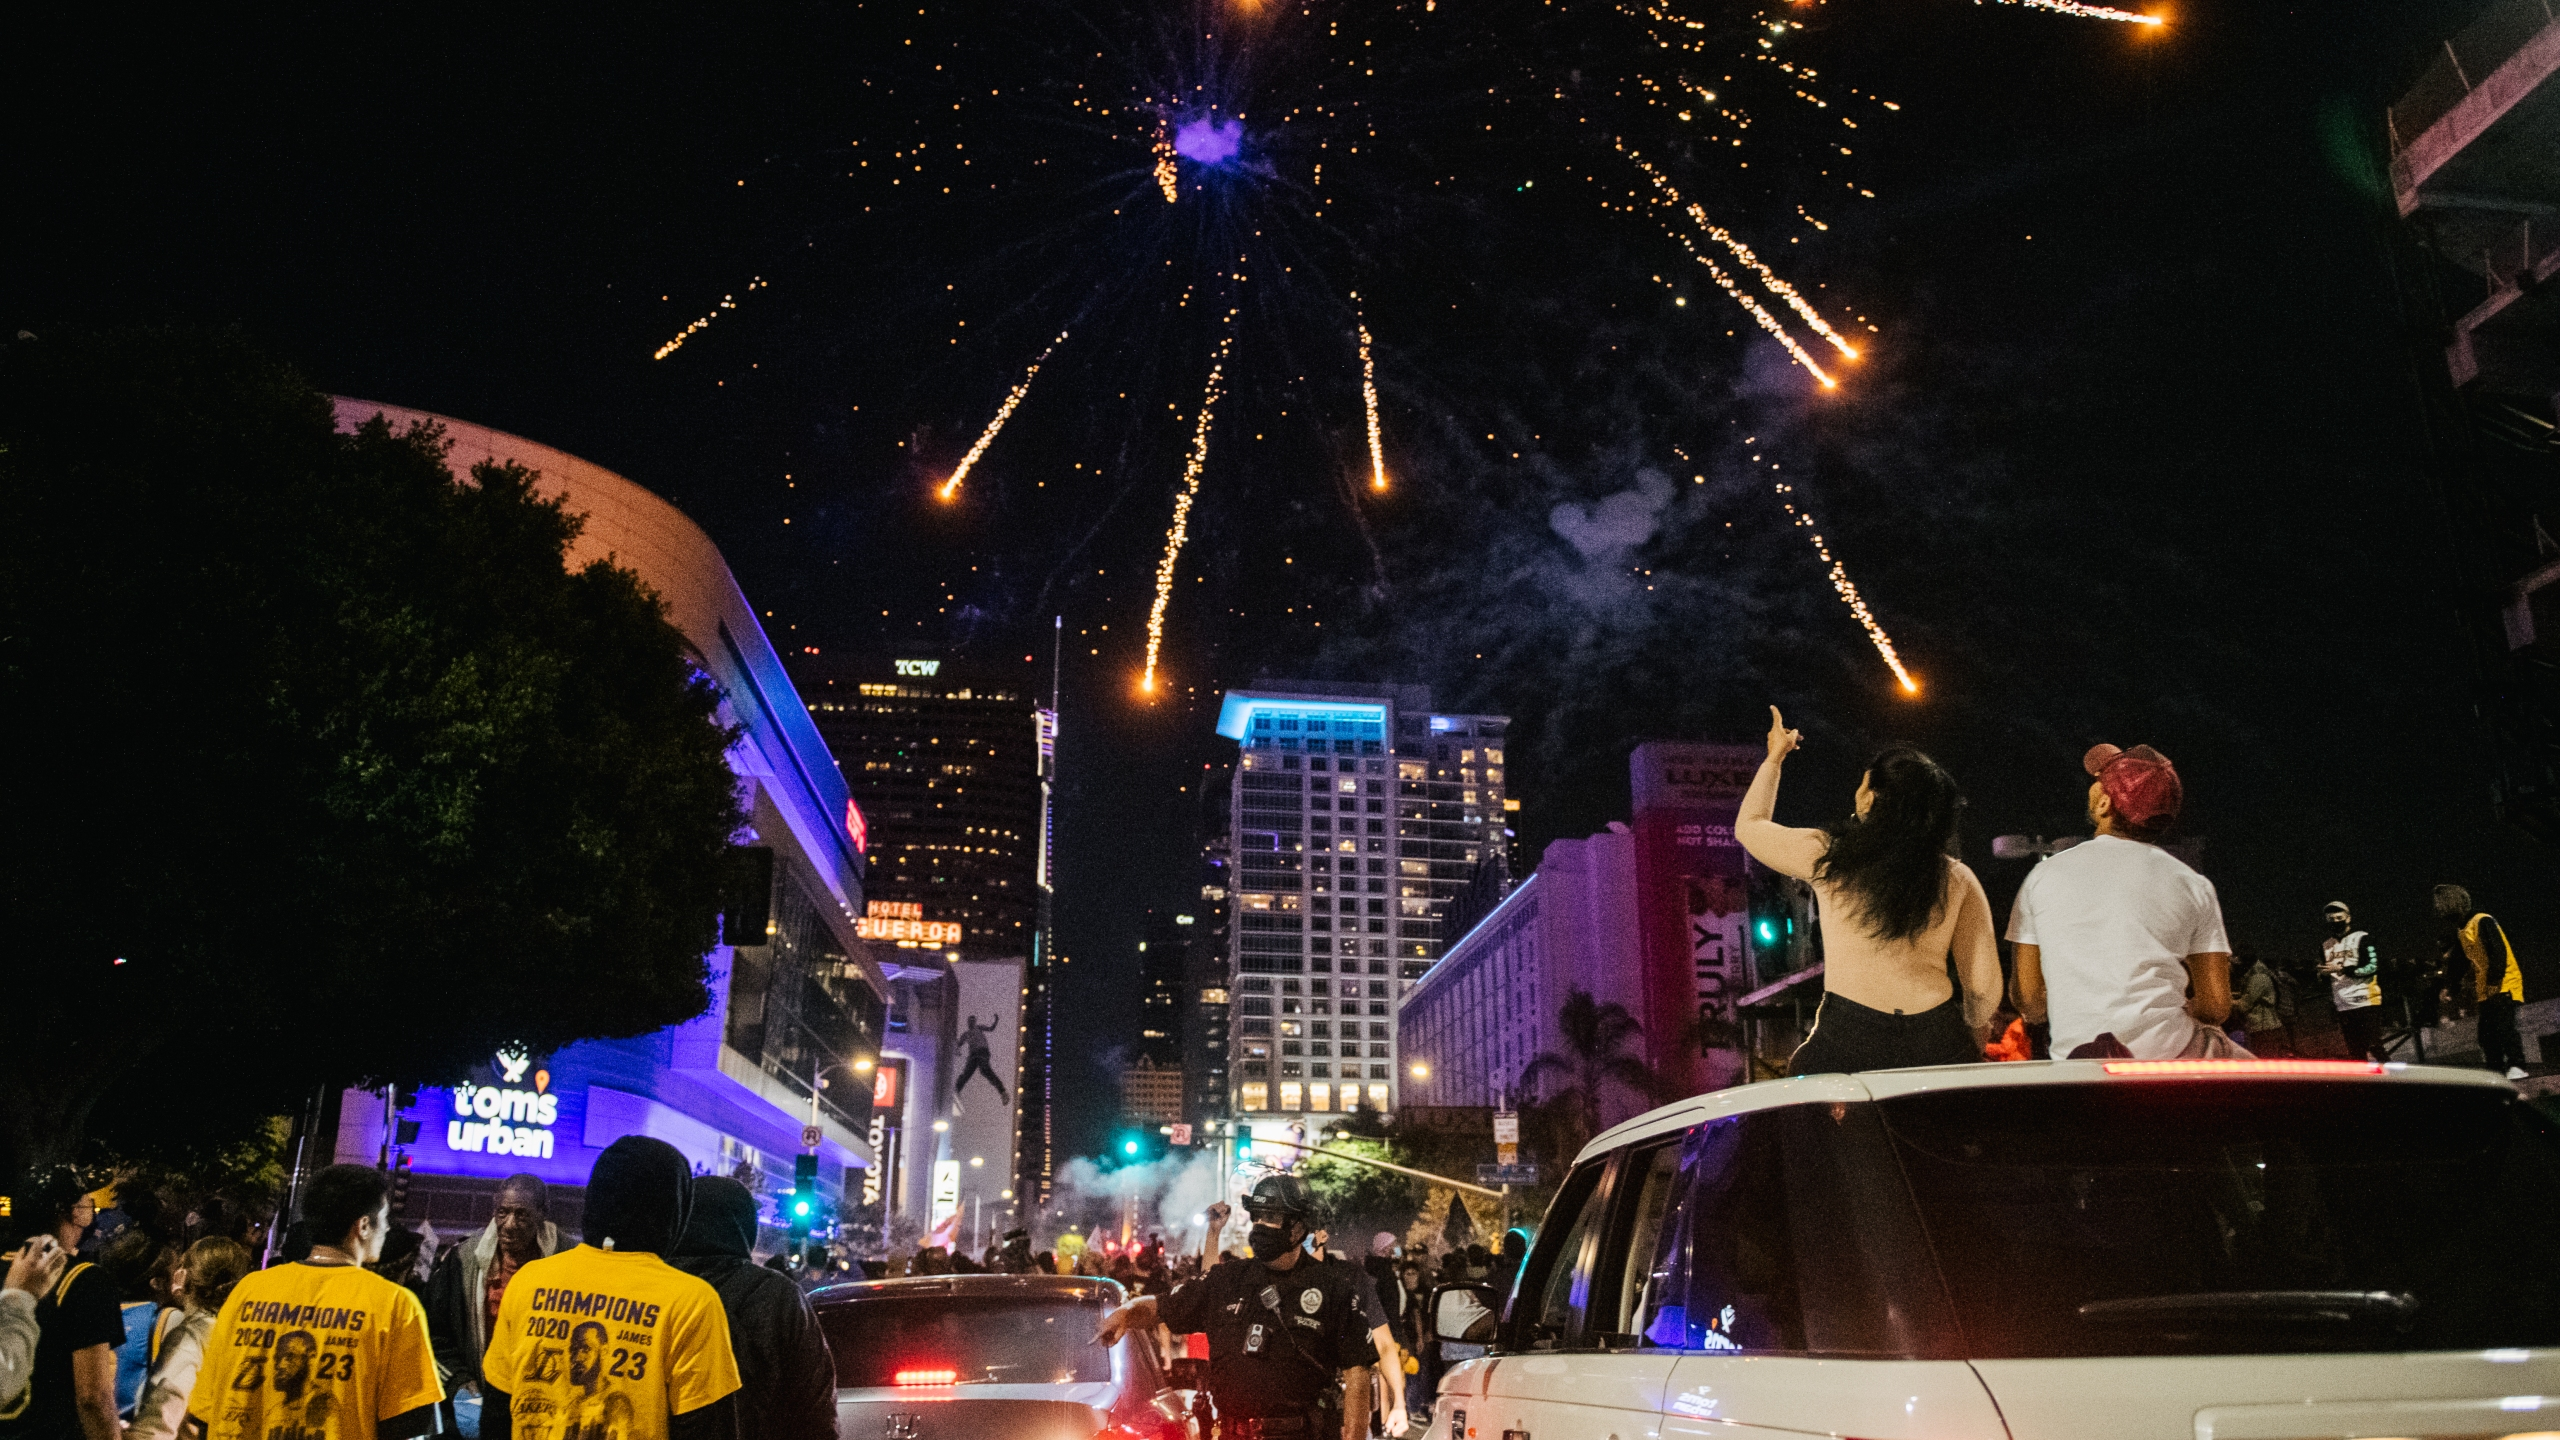 Lakers fans celebrate in front of the Staples Center on Oct. 11, 2020 in Los Angeles. (Brandon Bell/Getty Images)